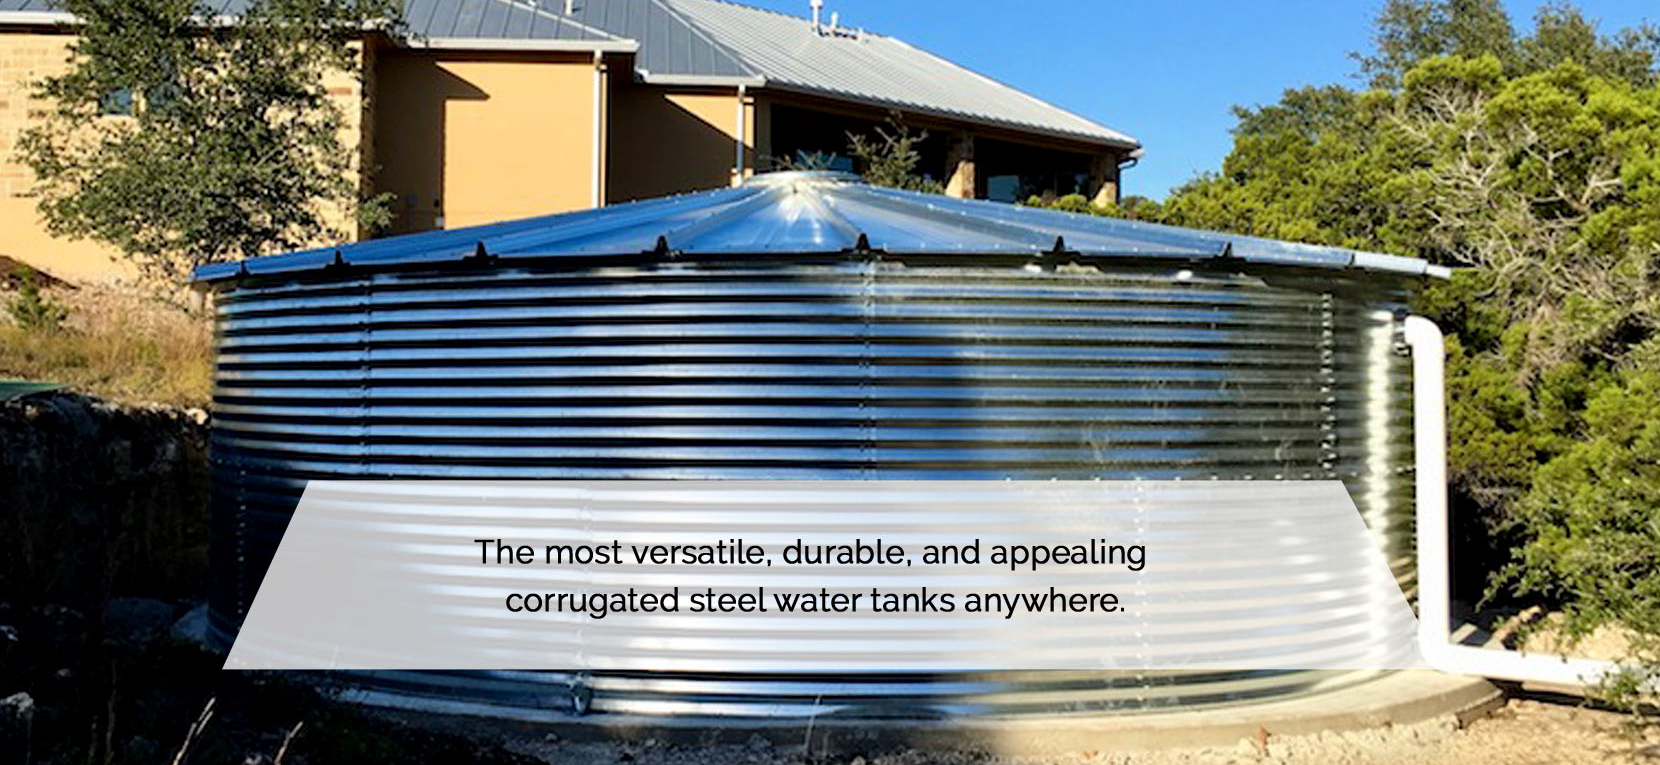 Galvanized Water Tanks - Steel Rainwater Tanks - Steel Water Tanks